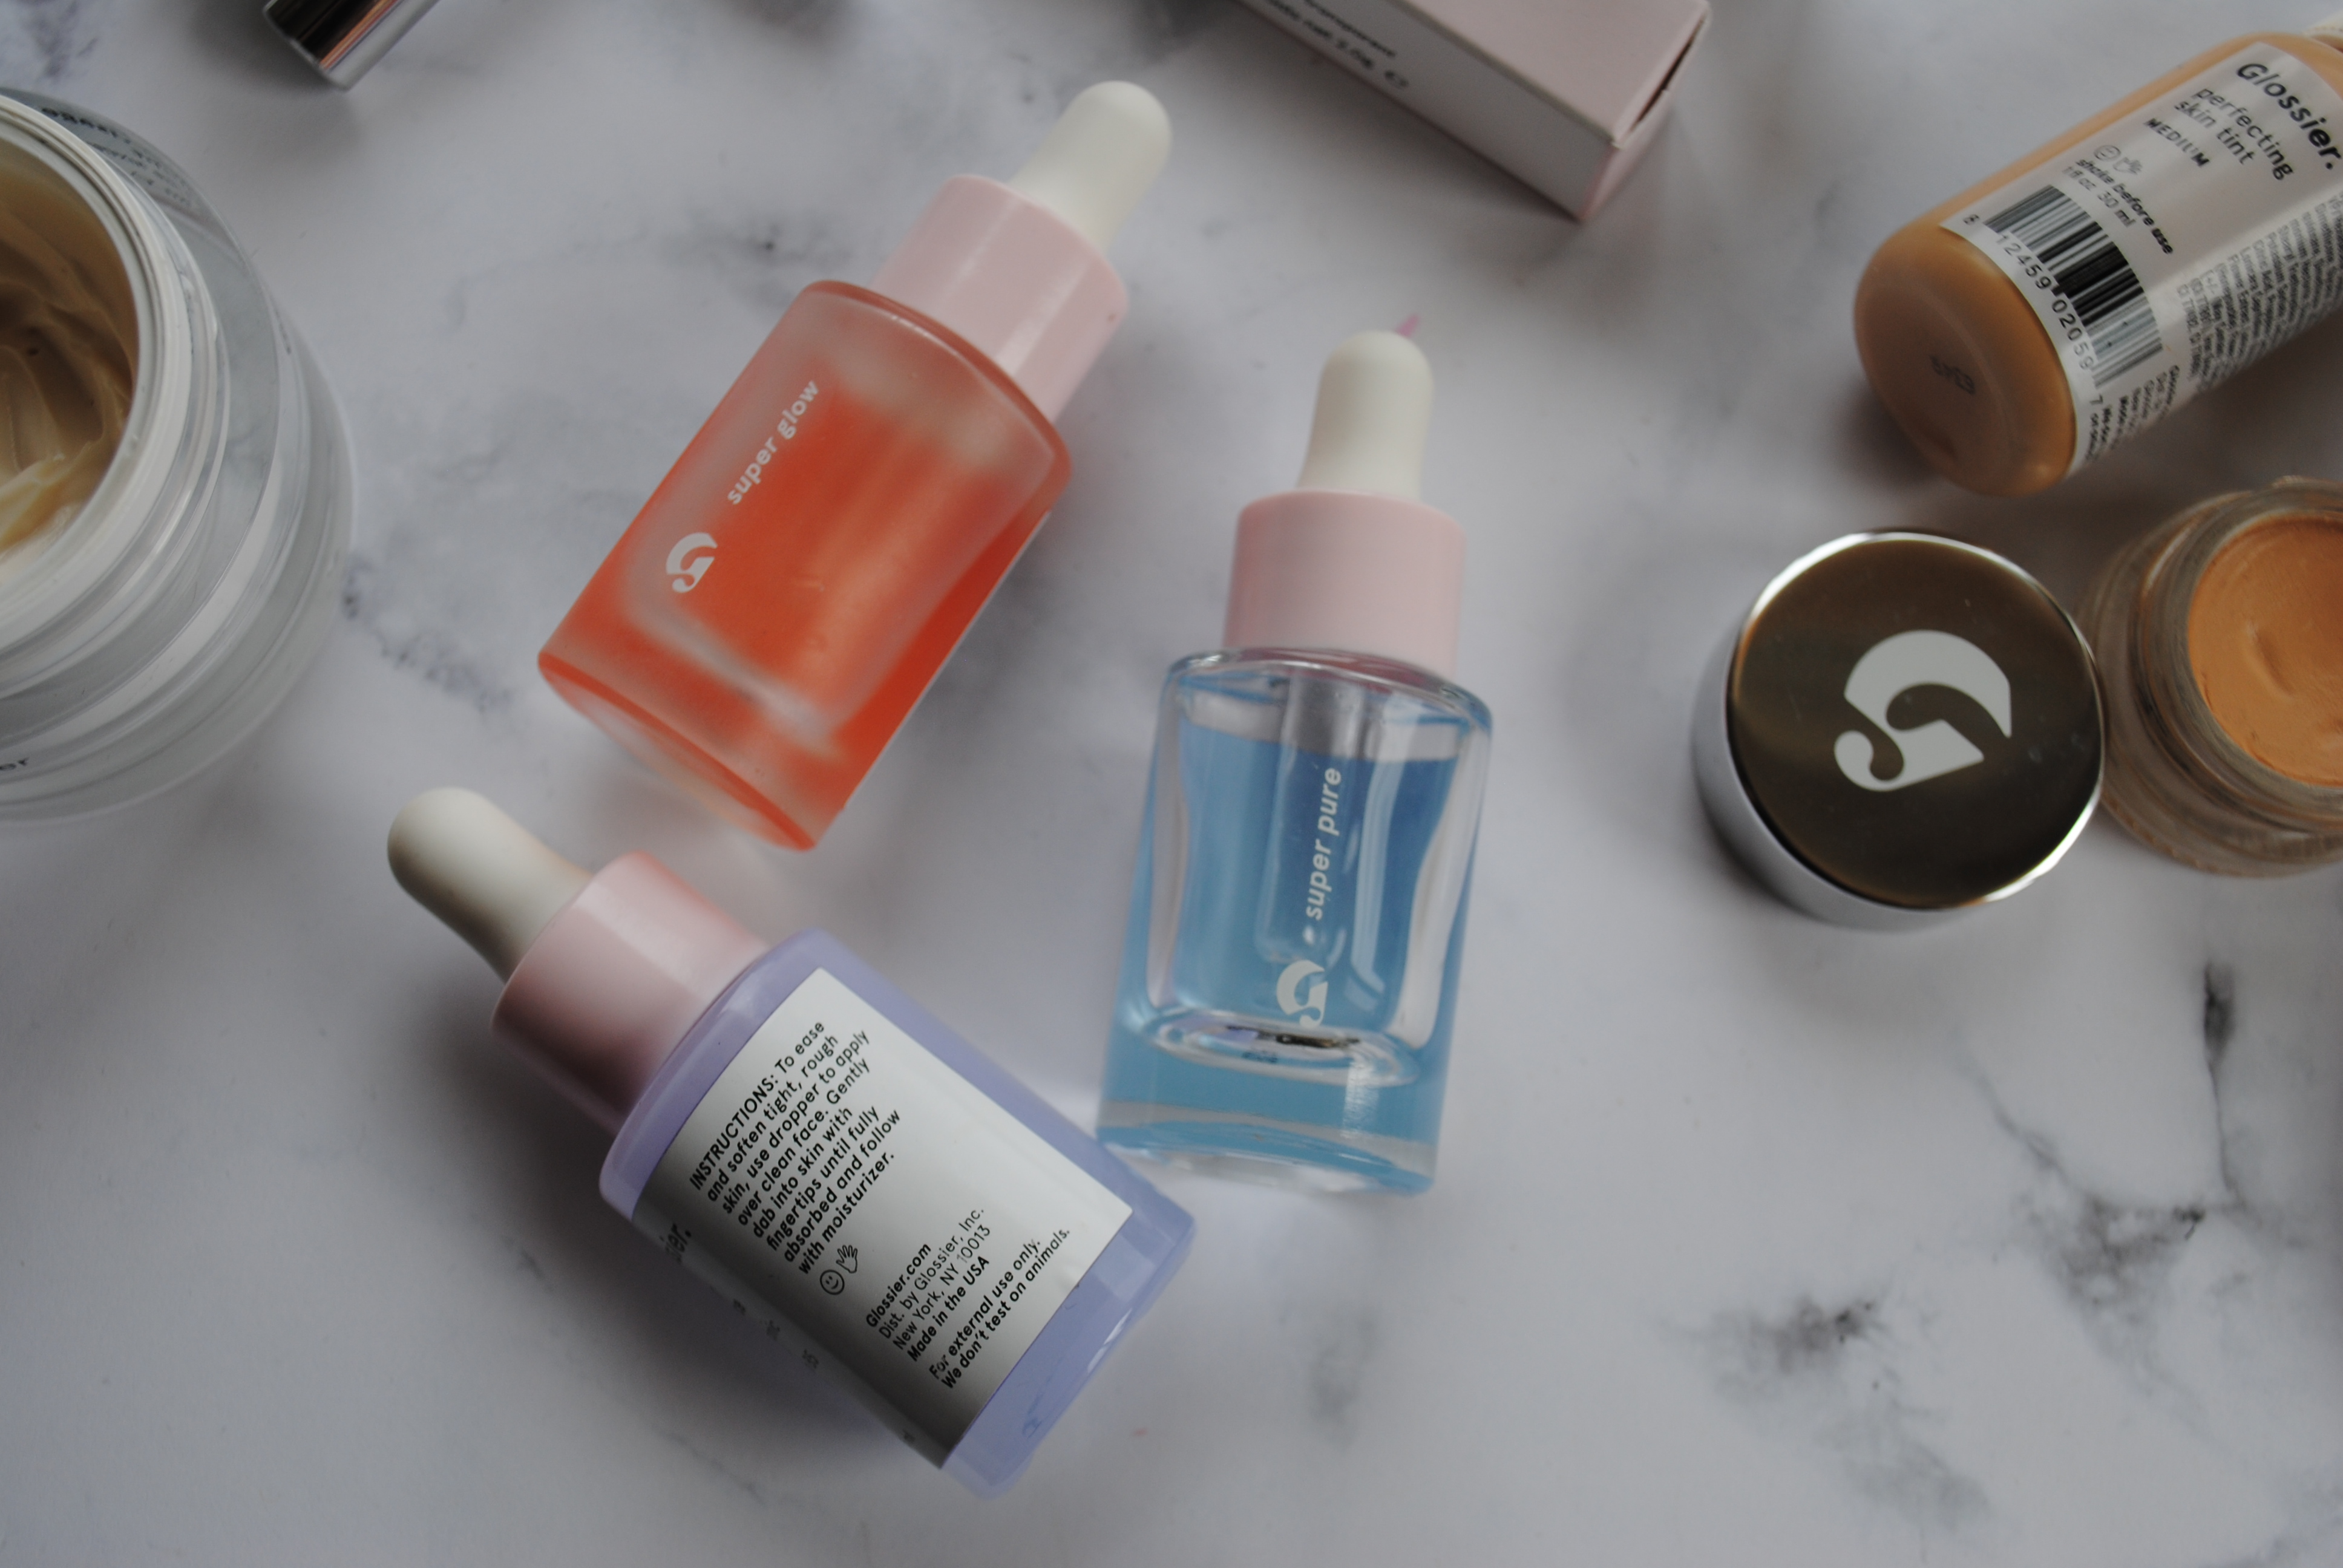 Glossier Product Review | Le Bella Gypsy